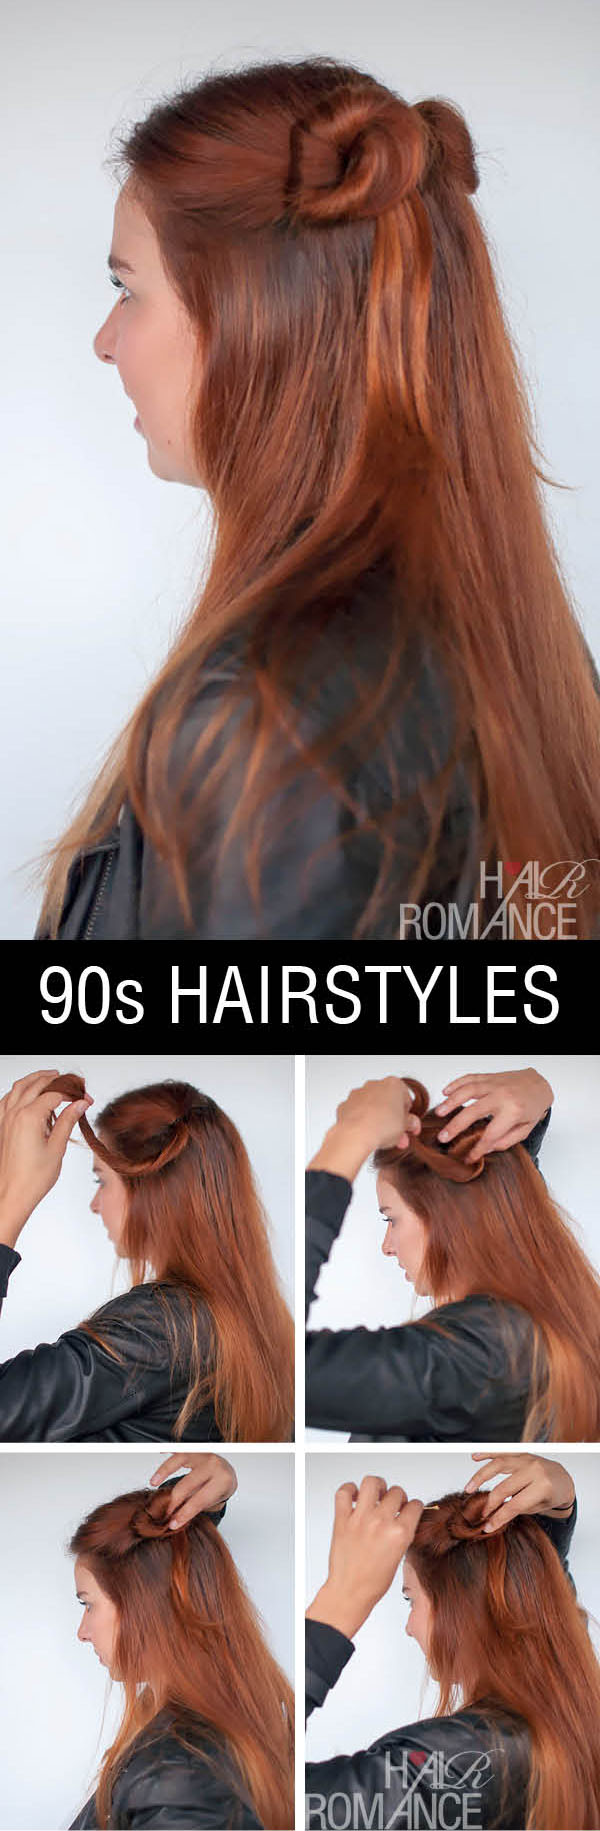 Hair Romance - half up double bun - normcore hair tutorials